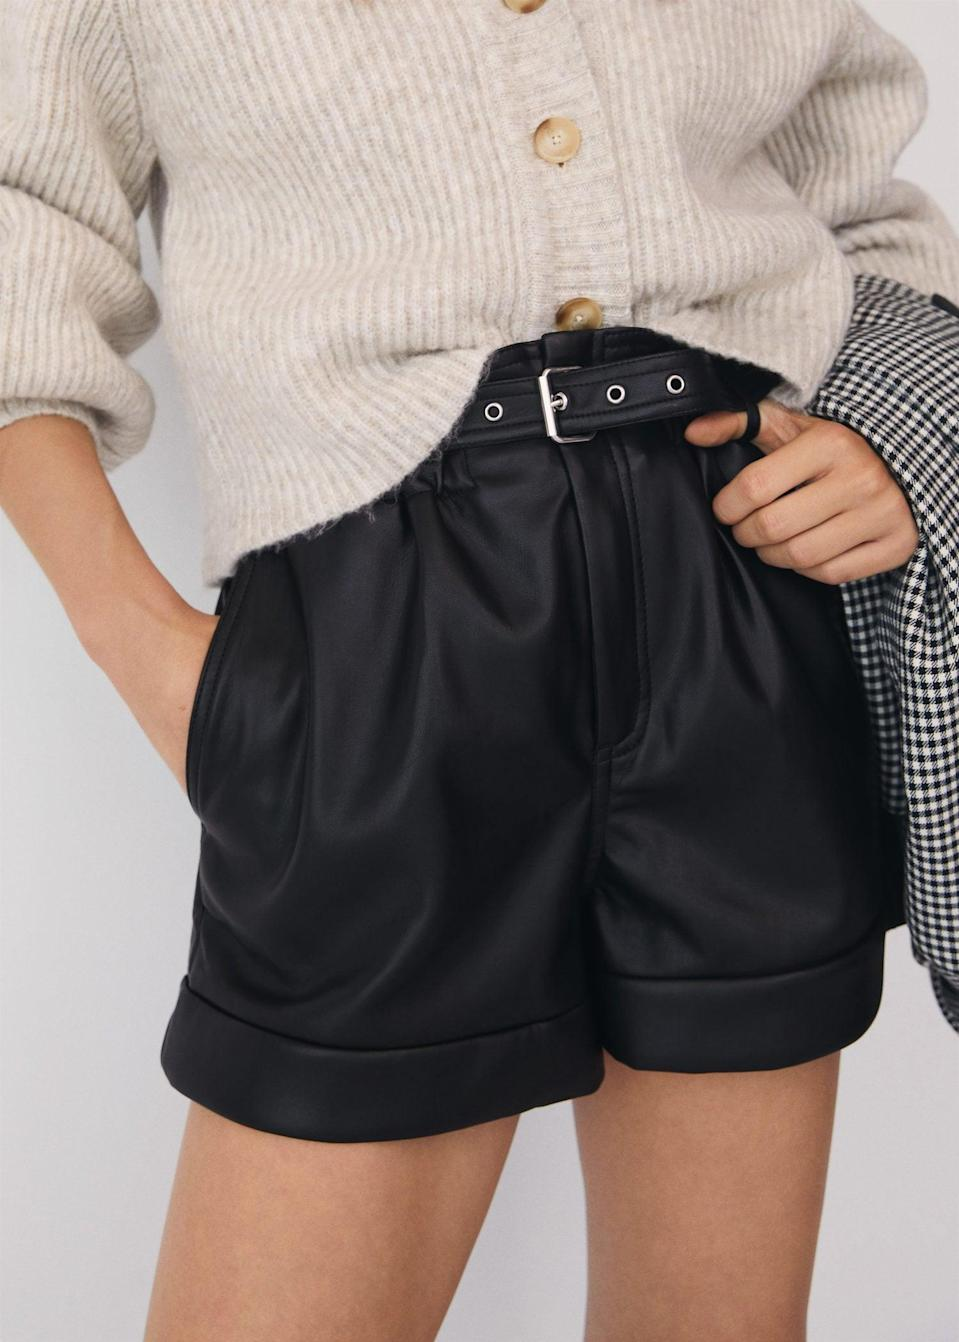 <p>These <span>Belted leather-effect shorts</span> ($50) feature an elastic waist and adjustable belt for a looser and comfy fit.</p>